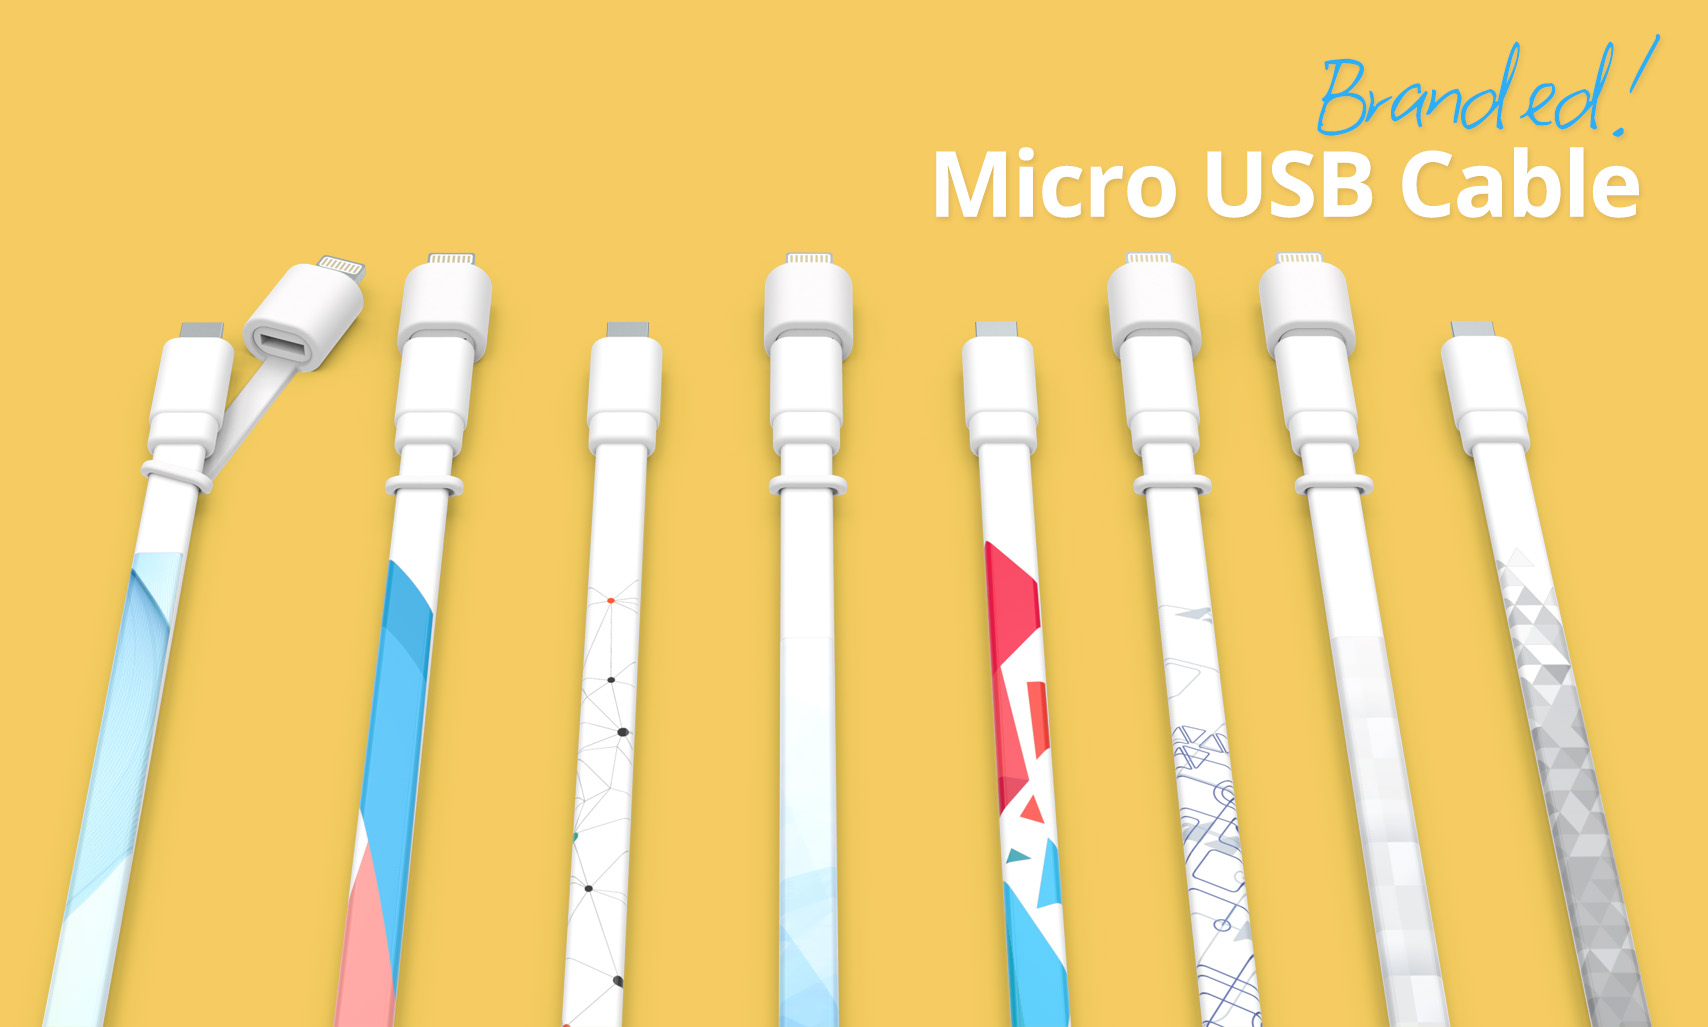 Branded cable designs